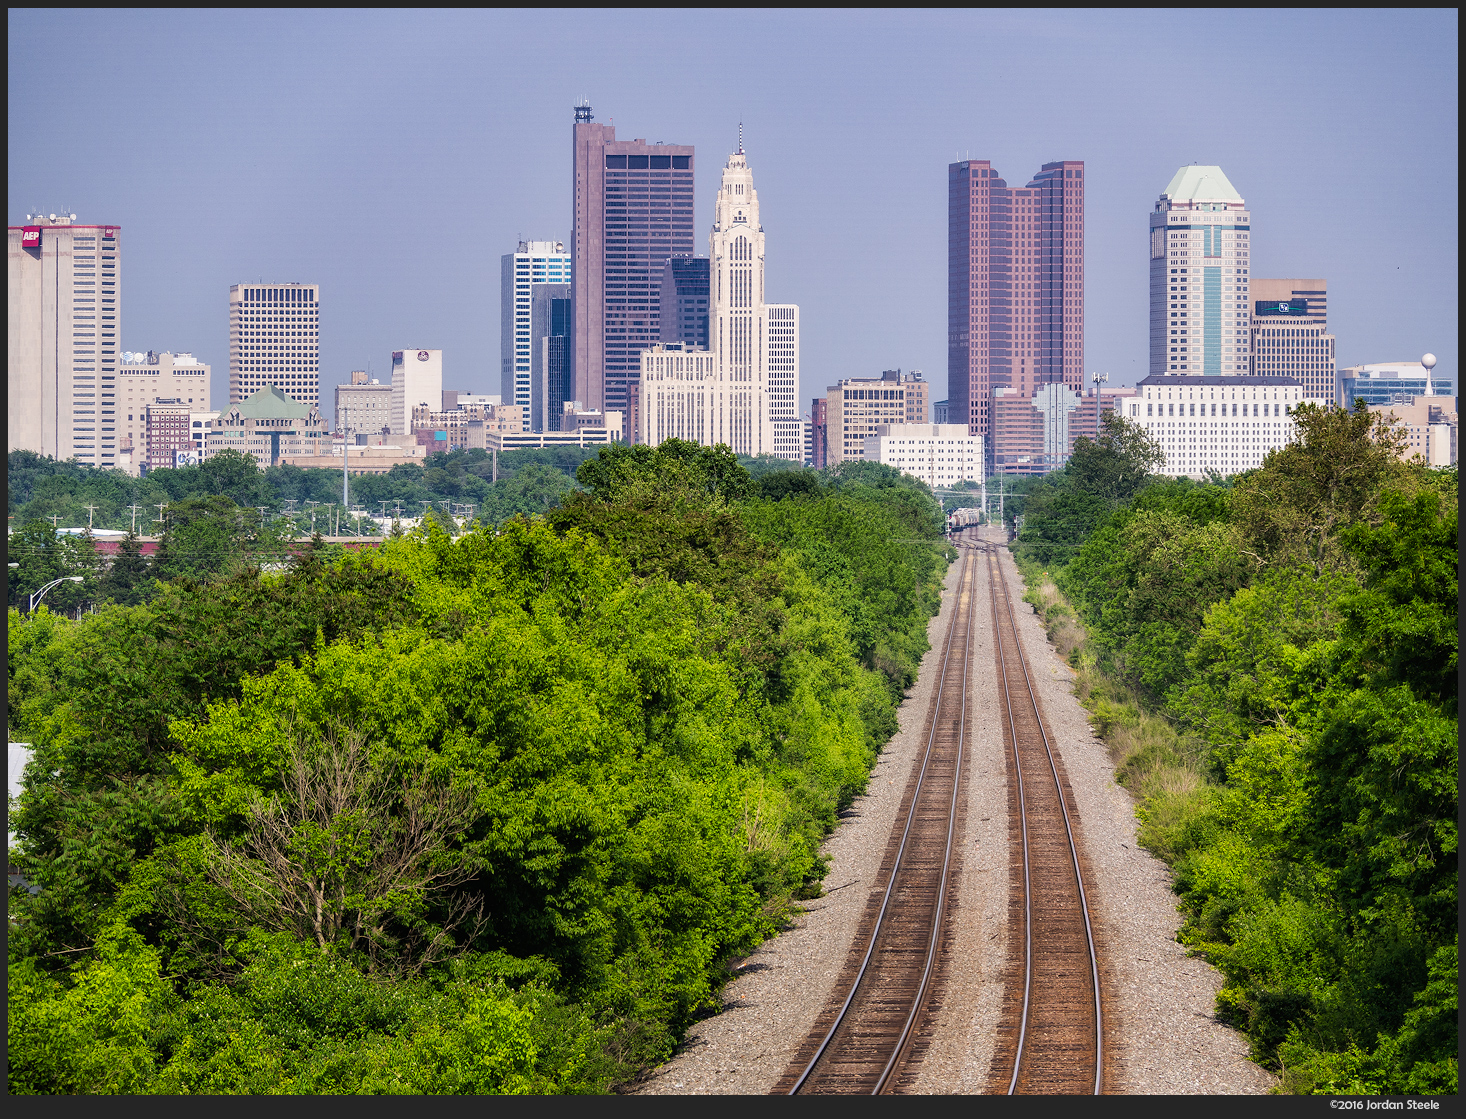 Columbus Down the Tracks - Olympus OM-D E-M10 Mark II with Panasonic Leica 100-400mm f/4-6.3 @ 100mm, f/8